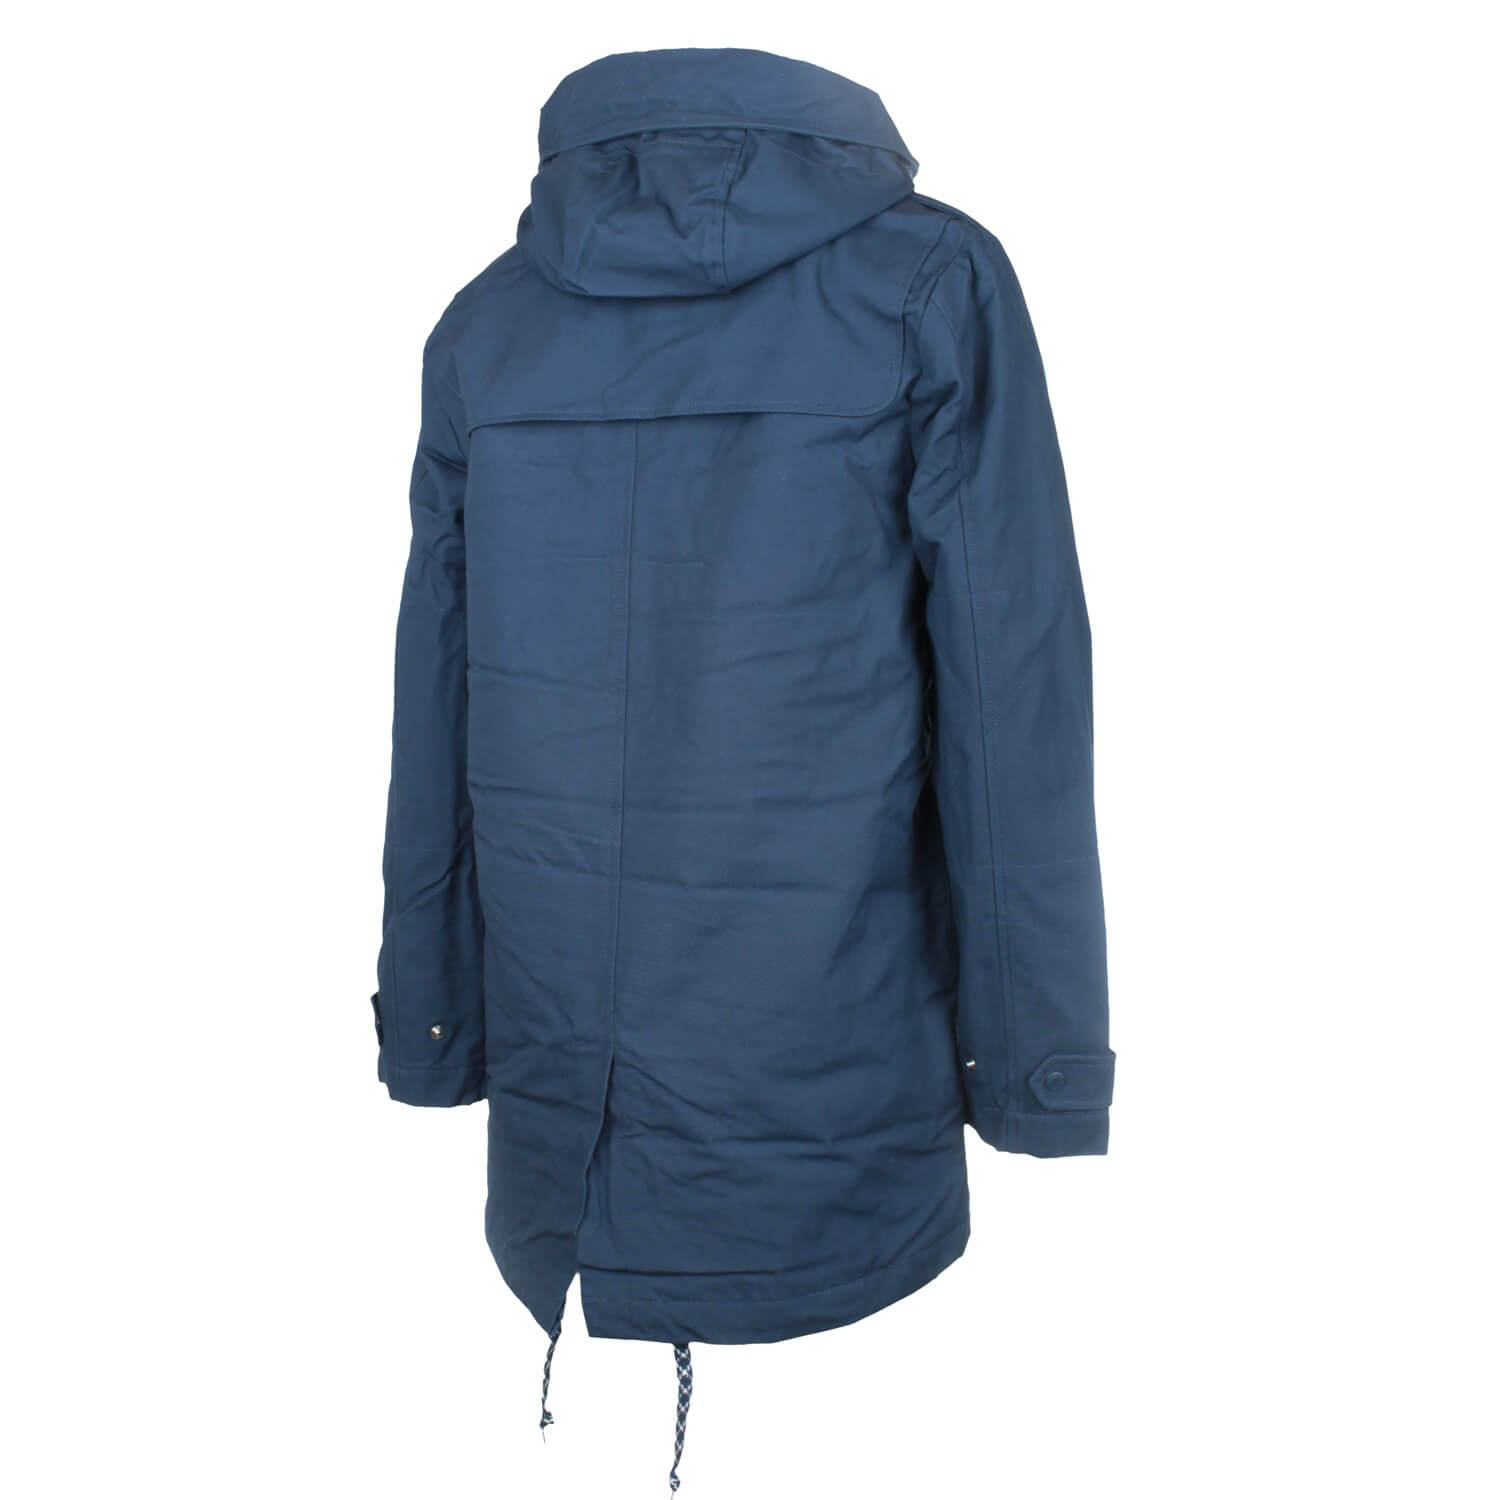 adidas storm parka herren jacke winter mantel navy blau ebay. Black Bedroom Furniture Sets. Home Design Ideas